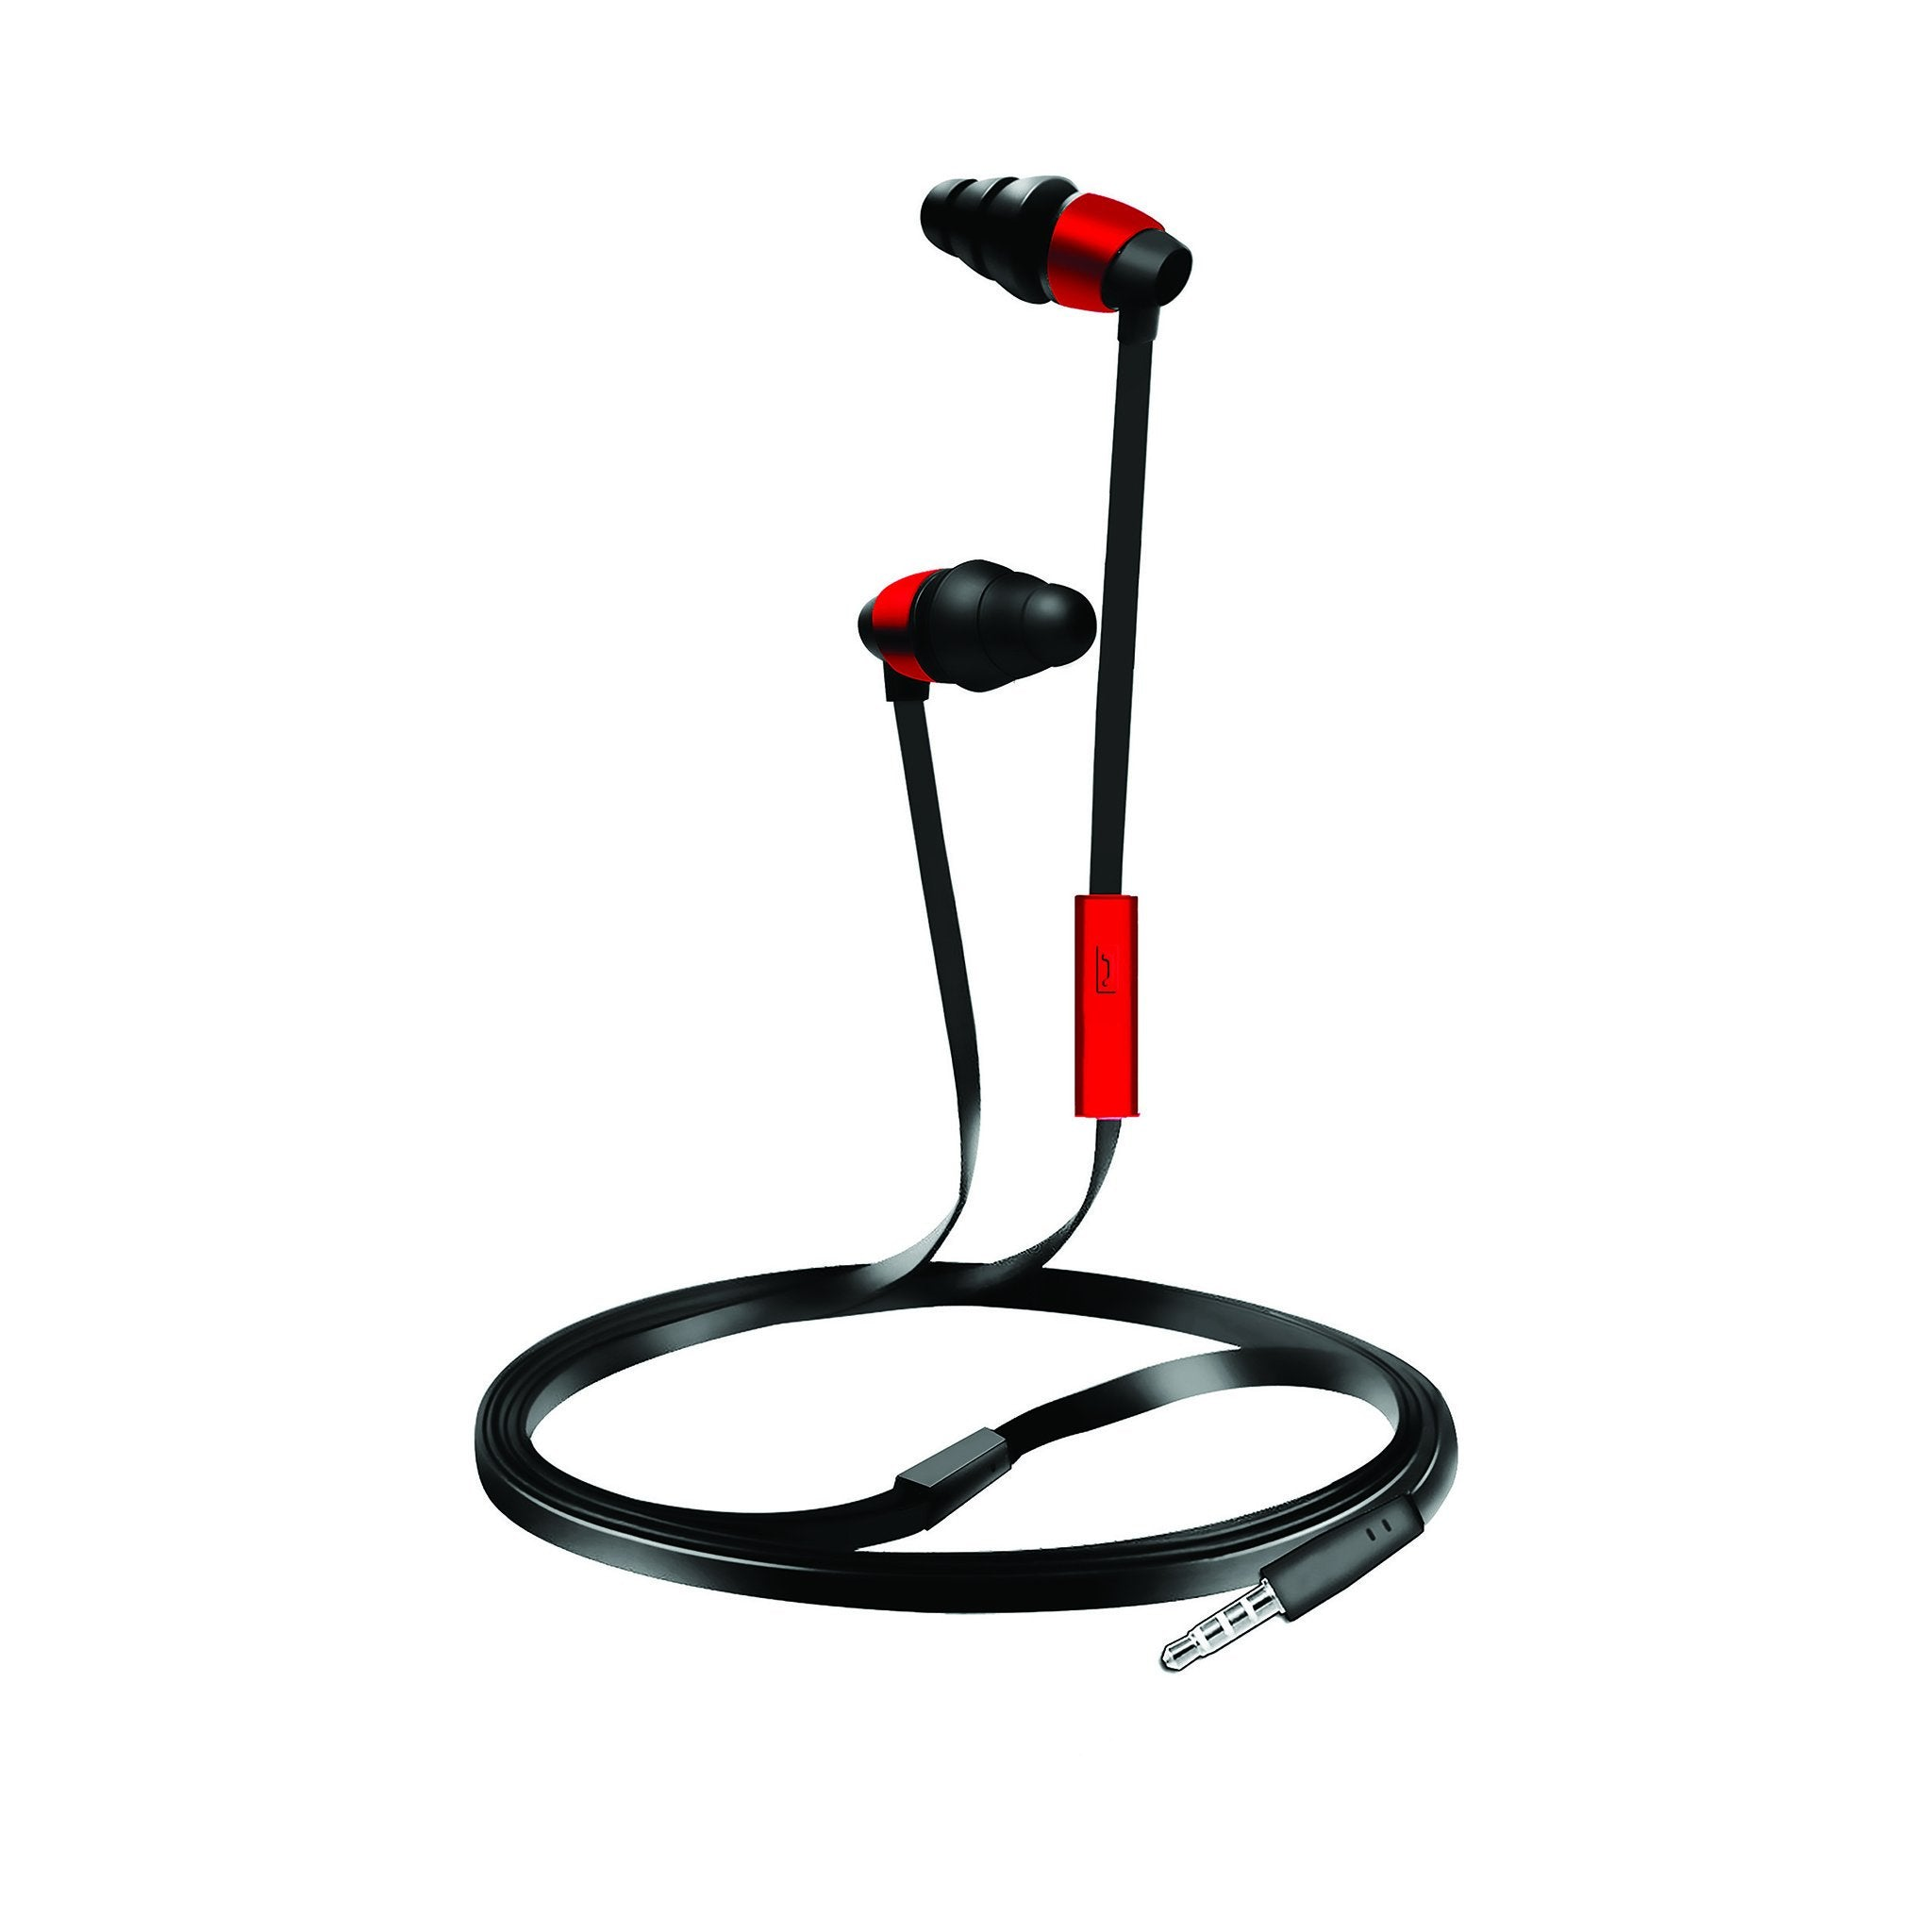 Triplex Stereo Earbuds